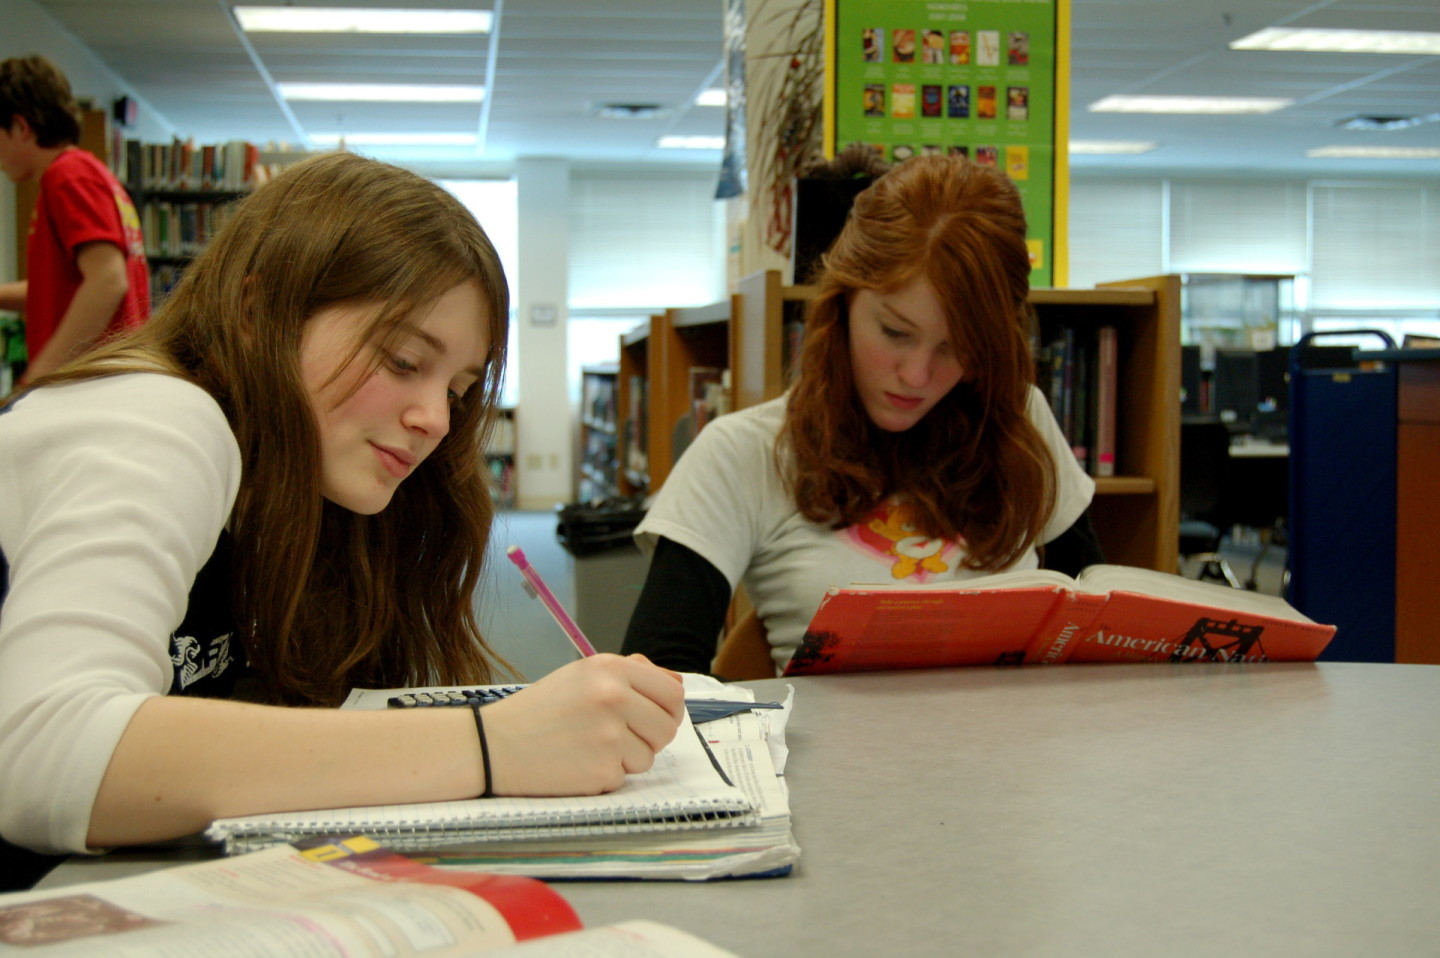 Two girls spend time at a library studying math and doing homework.